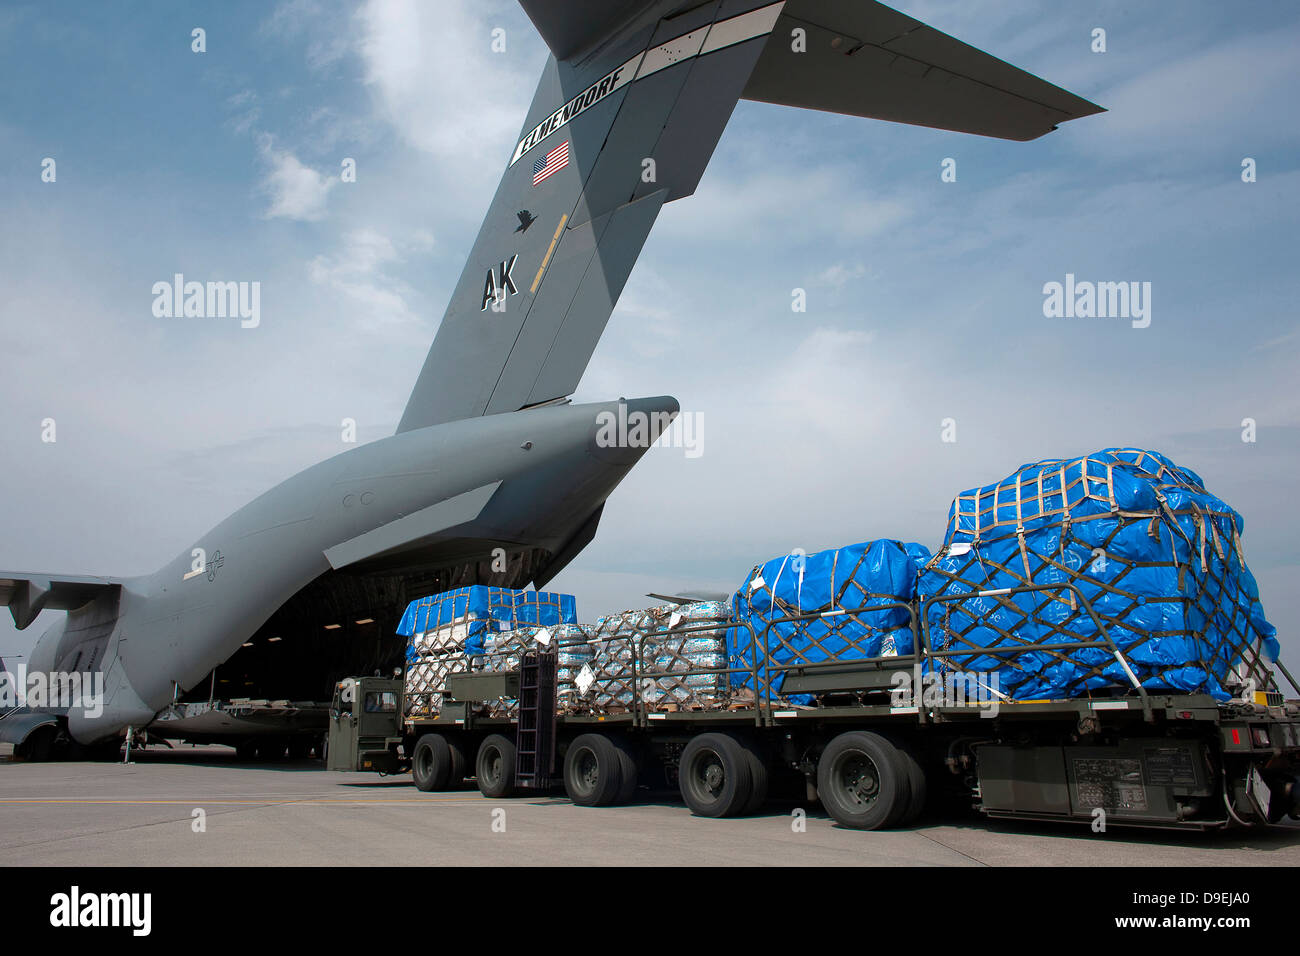 A Japanese soldier marshals vehicles from a C-17 Globemaster III. - Stock Image